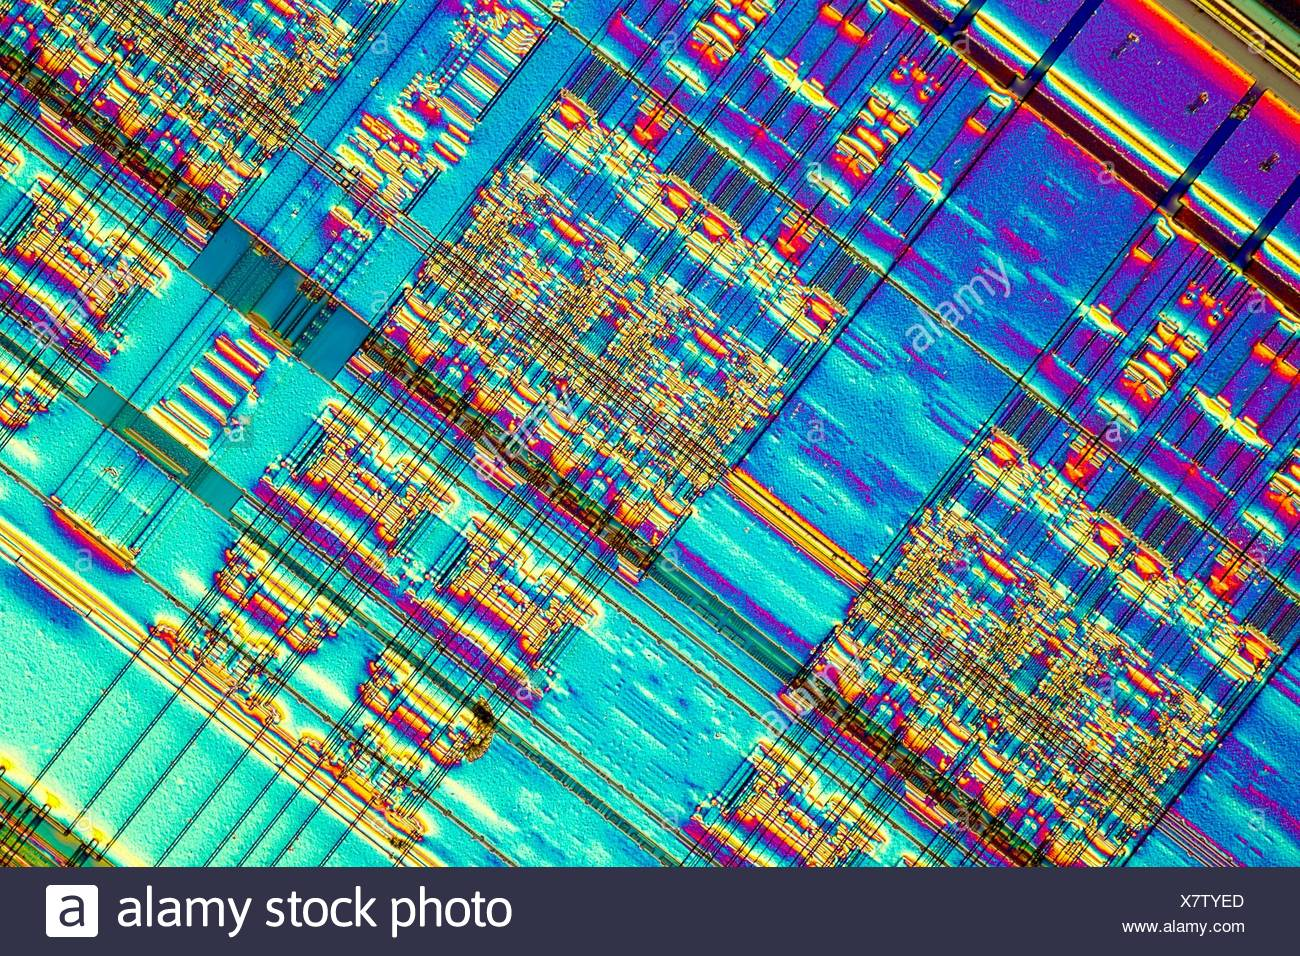 Chip Circuit Circuits Computer Stock Photos Most Popular Electronic Light Micrograph Of A Detail Ram Memory Is Type